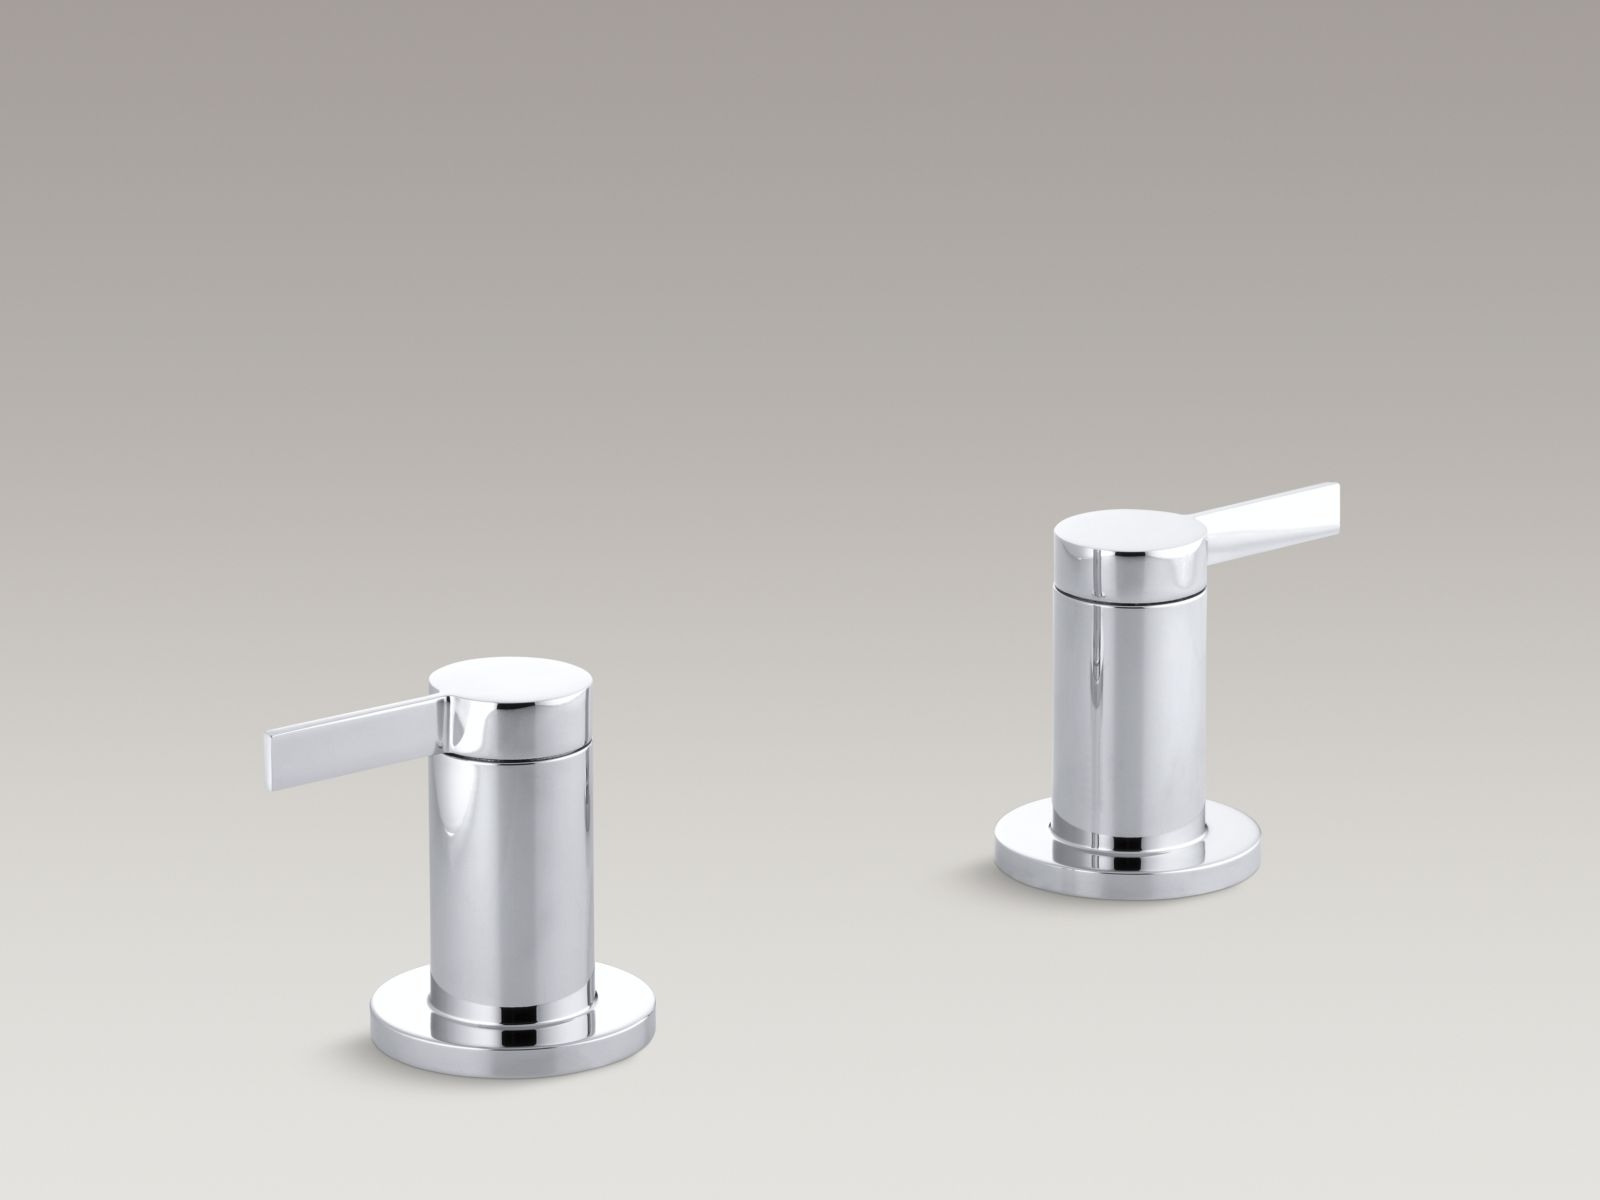 Ideas, kohler stillness lav faucet kohler stillness lav faucet buyplumbing category bathtub filler 1600 x 1200 1  .